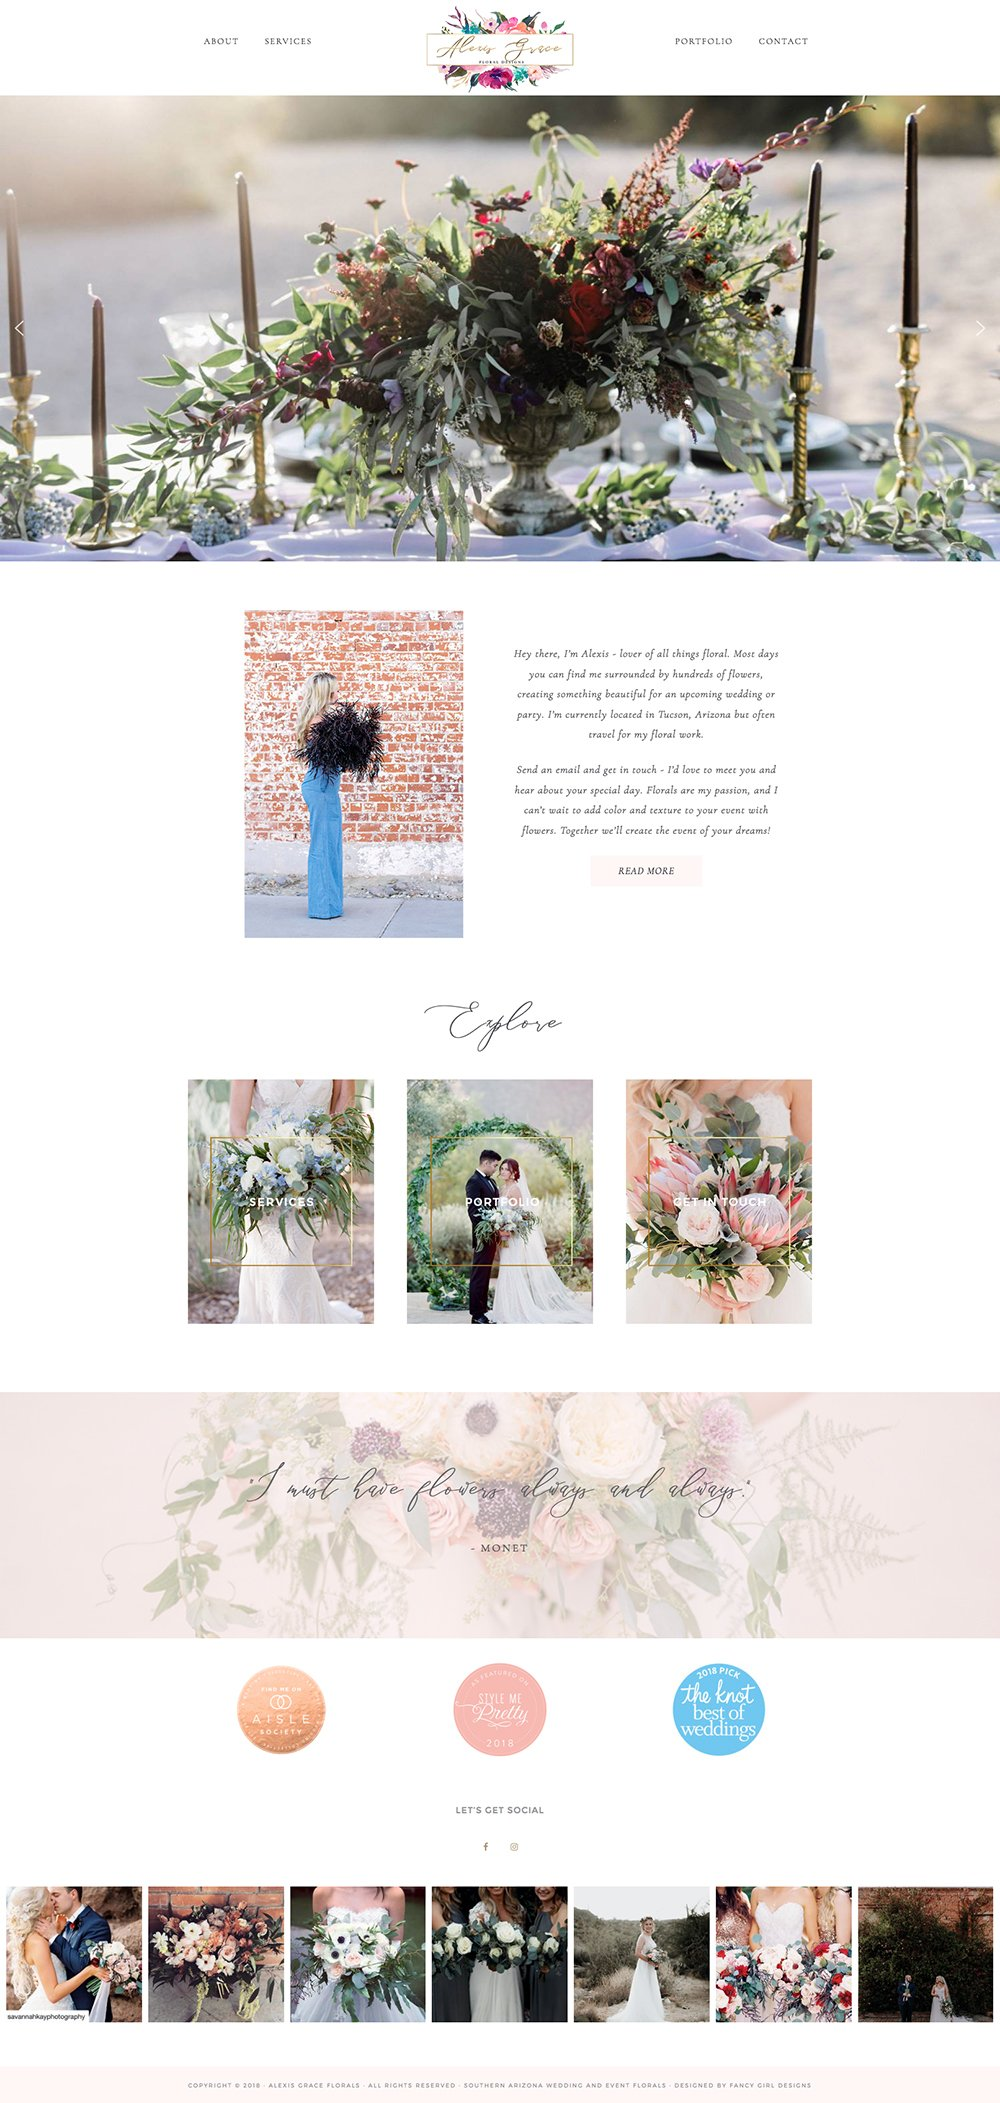 alexis grace florals homepage screenshot